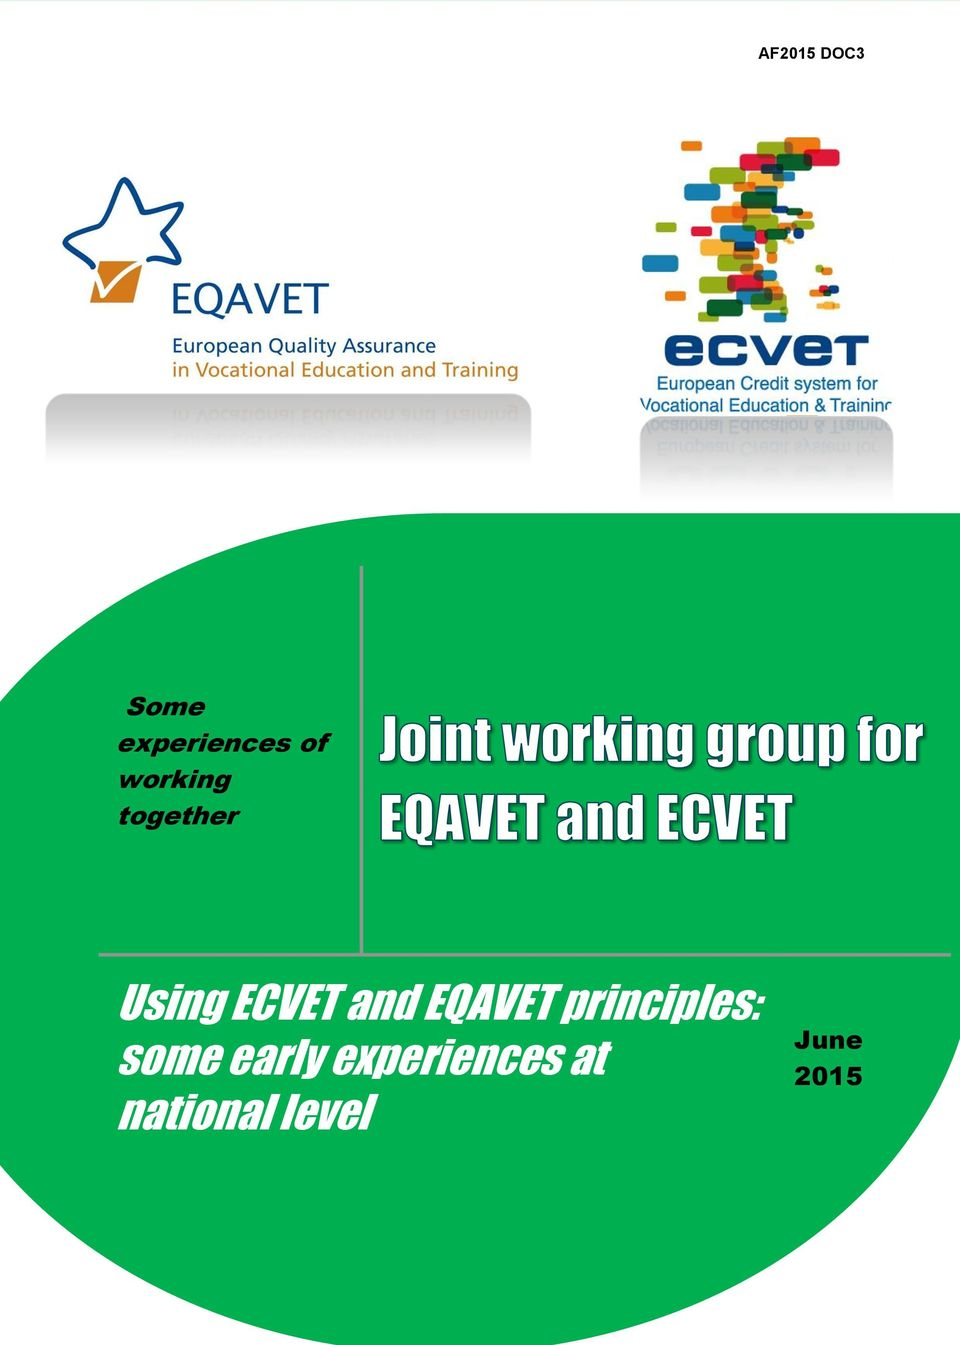 ECVET and EQAVET principles: some